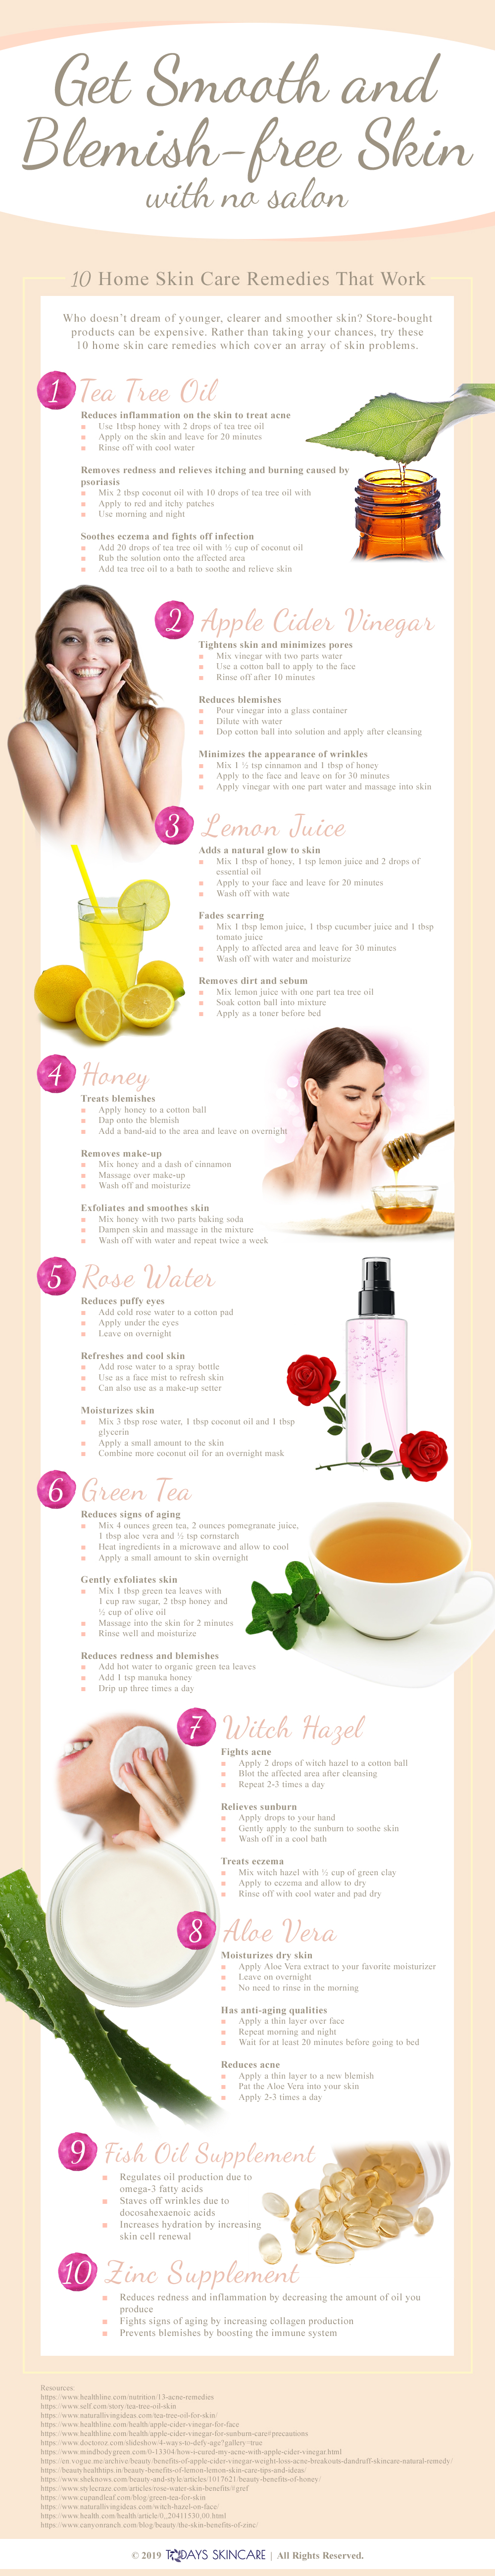 Top 10 Home Skin Care Remedies That Work